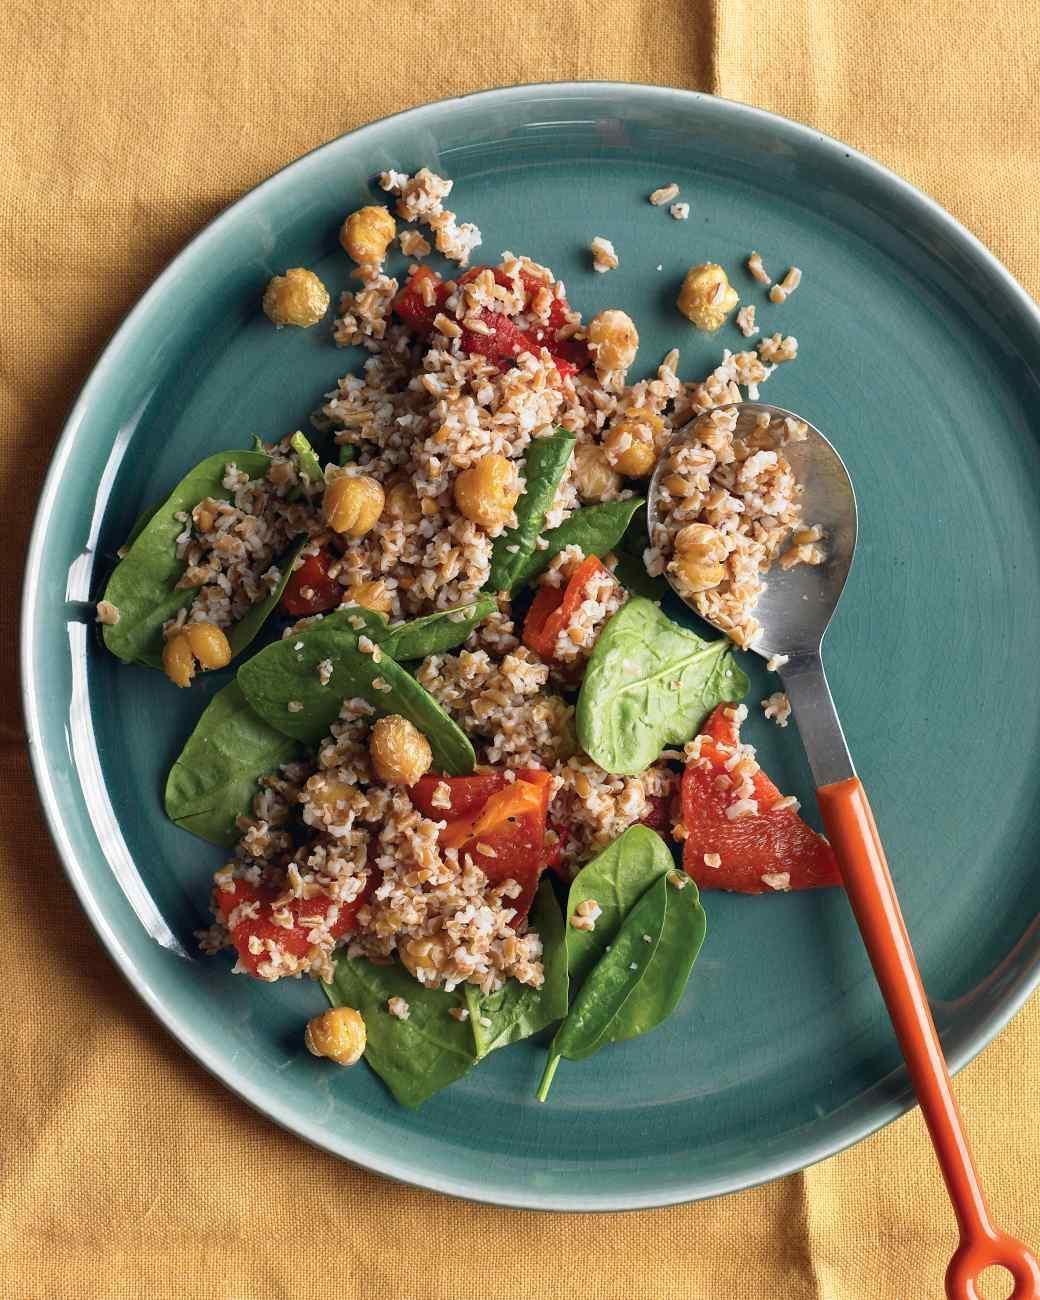 ... Monday: Bulgur with Roasted Red Peppers, Chickpeas, and Spinach